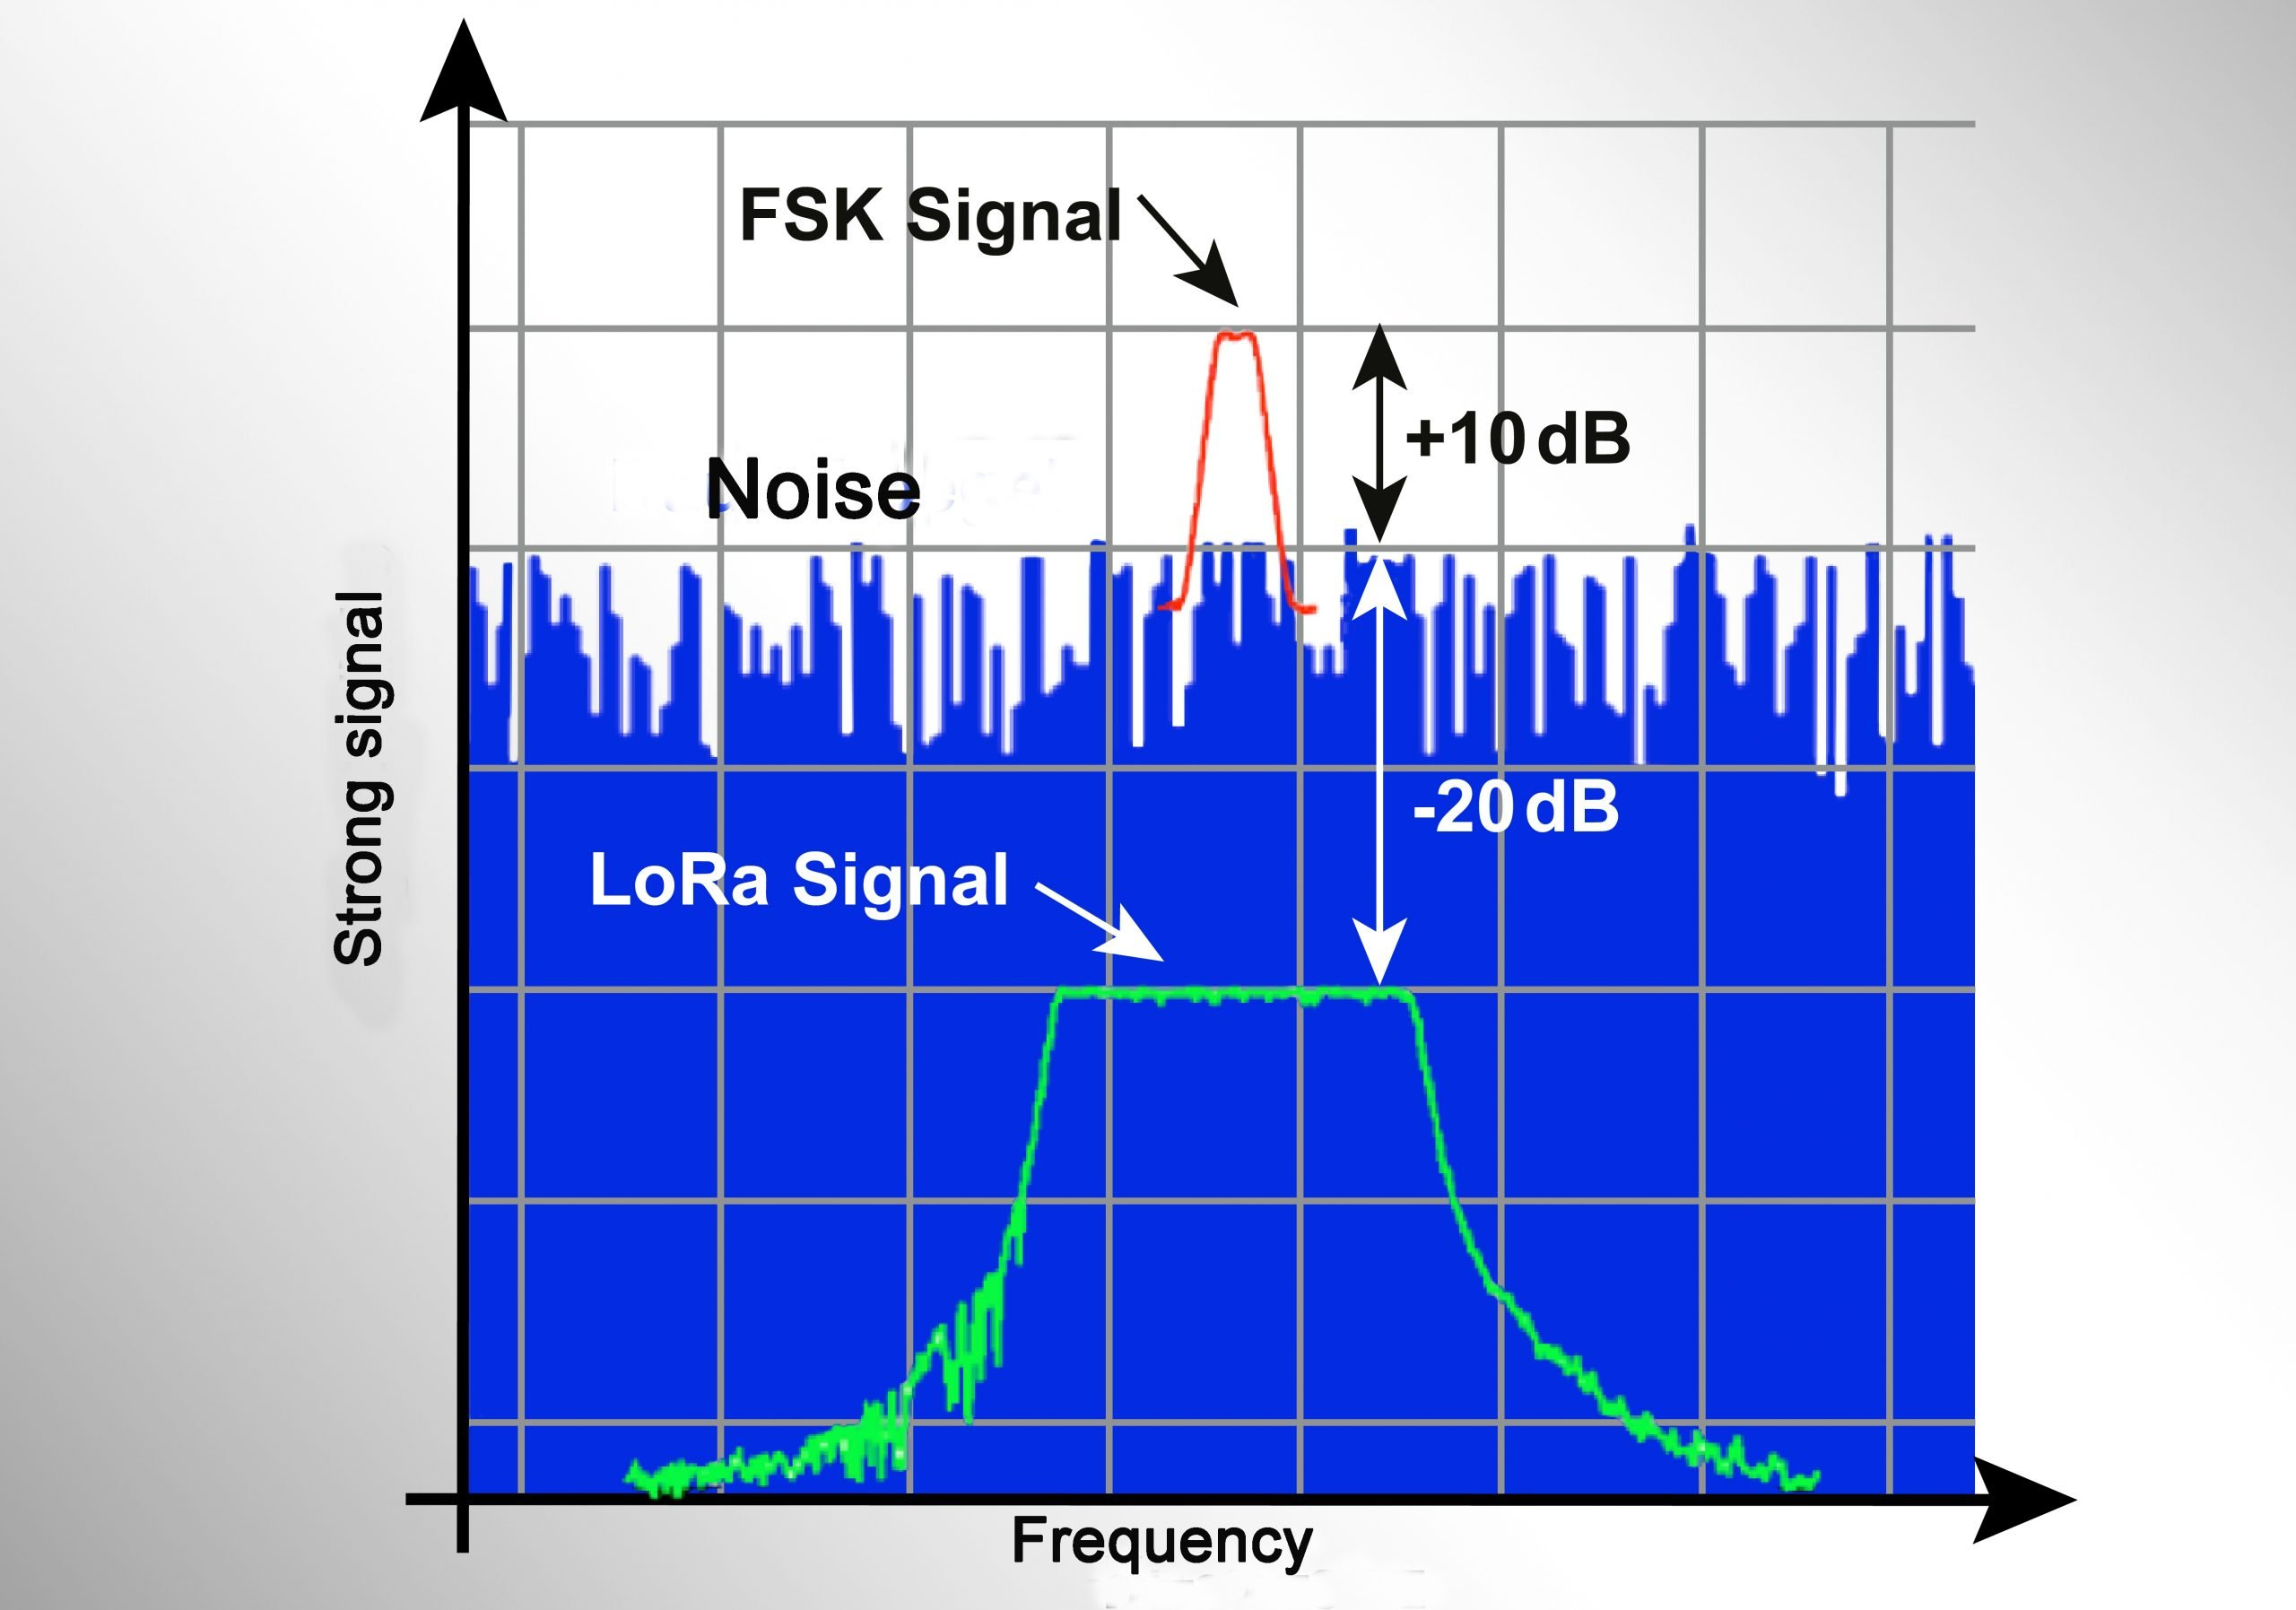 LoRa-Frequency-and-signal strength